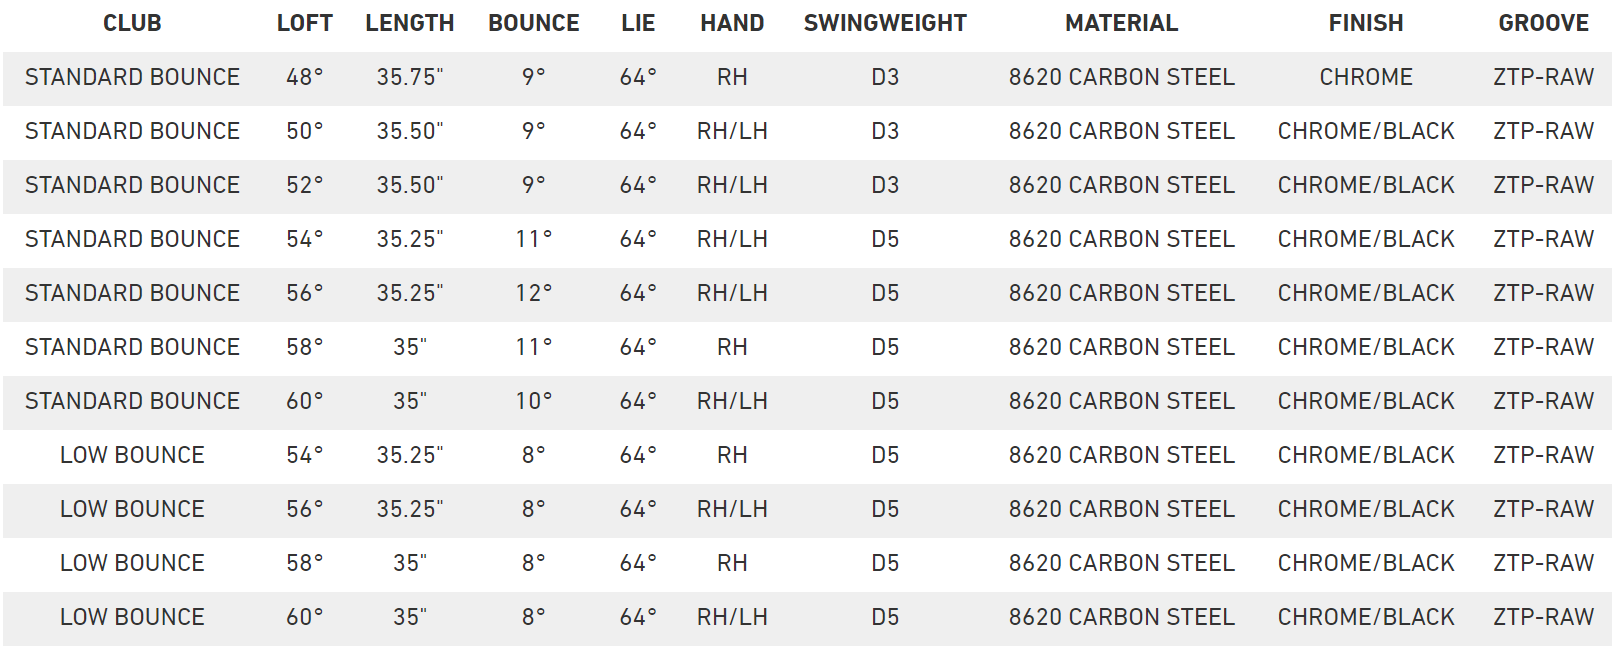 TaylorMade MG 2 Wedge Specs table image